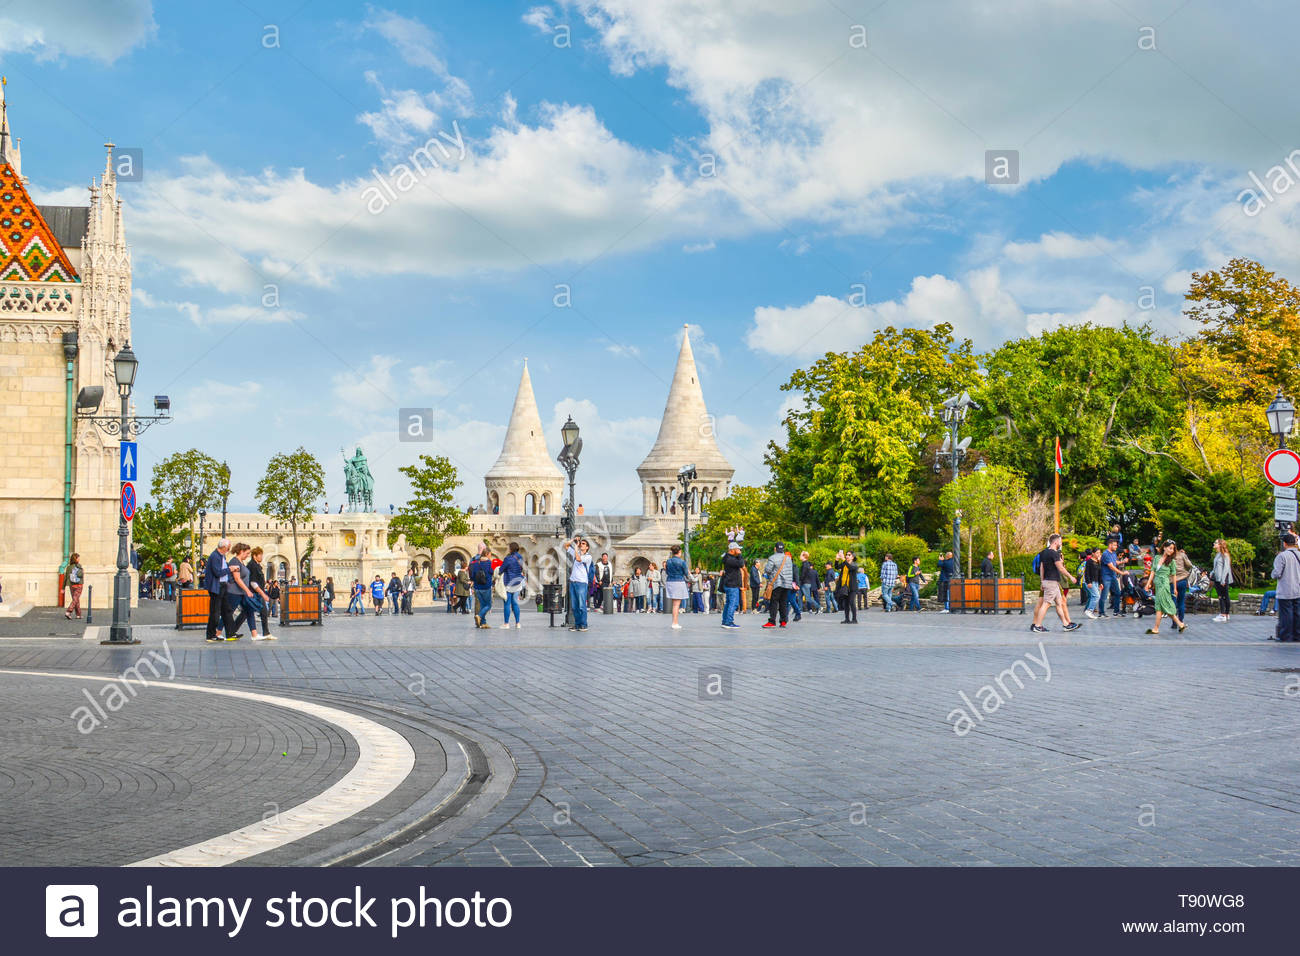 Matthias Square with the Matthias Church and the Fisherman's Bastion with tourists enjoying the sunny day in Budapest Hungary Stock Photo